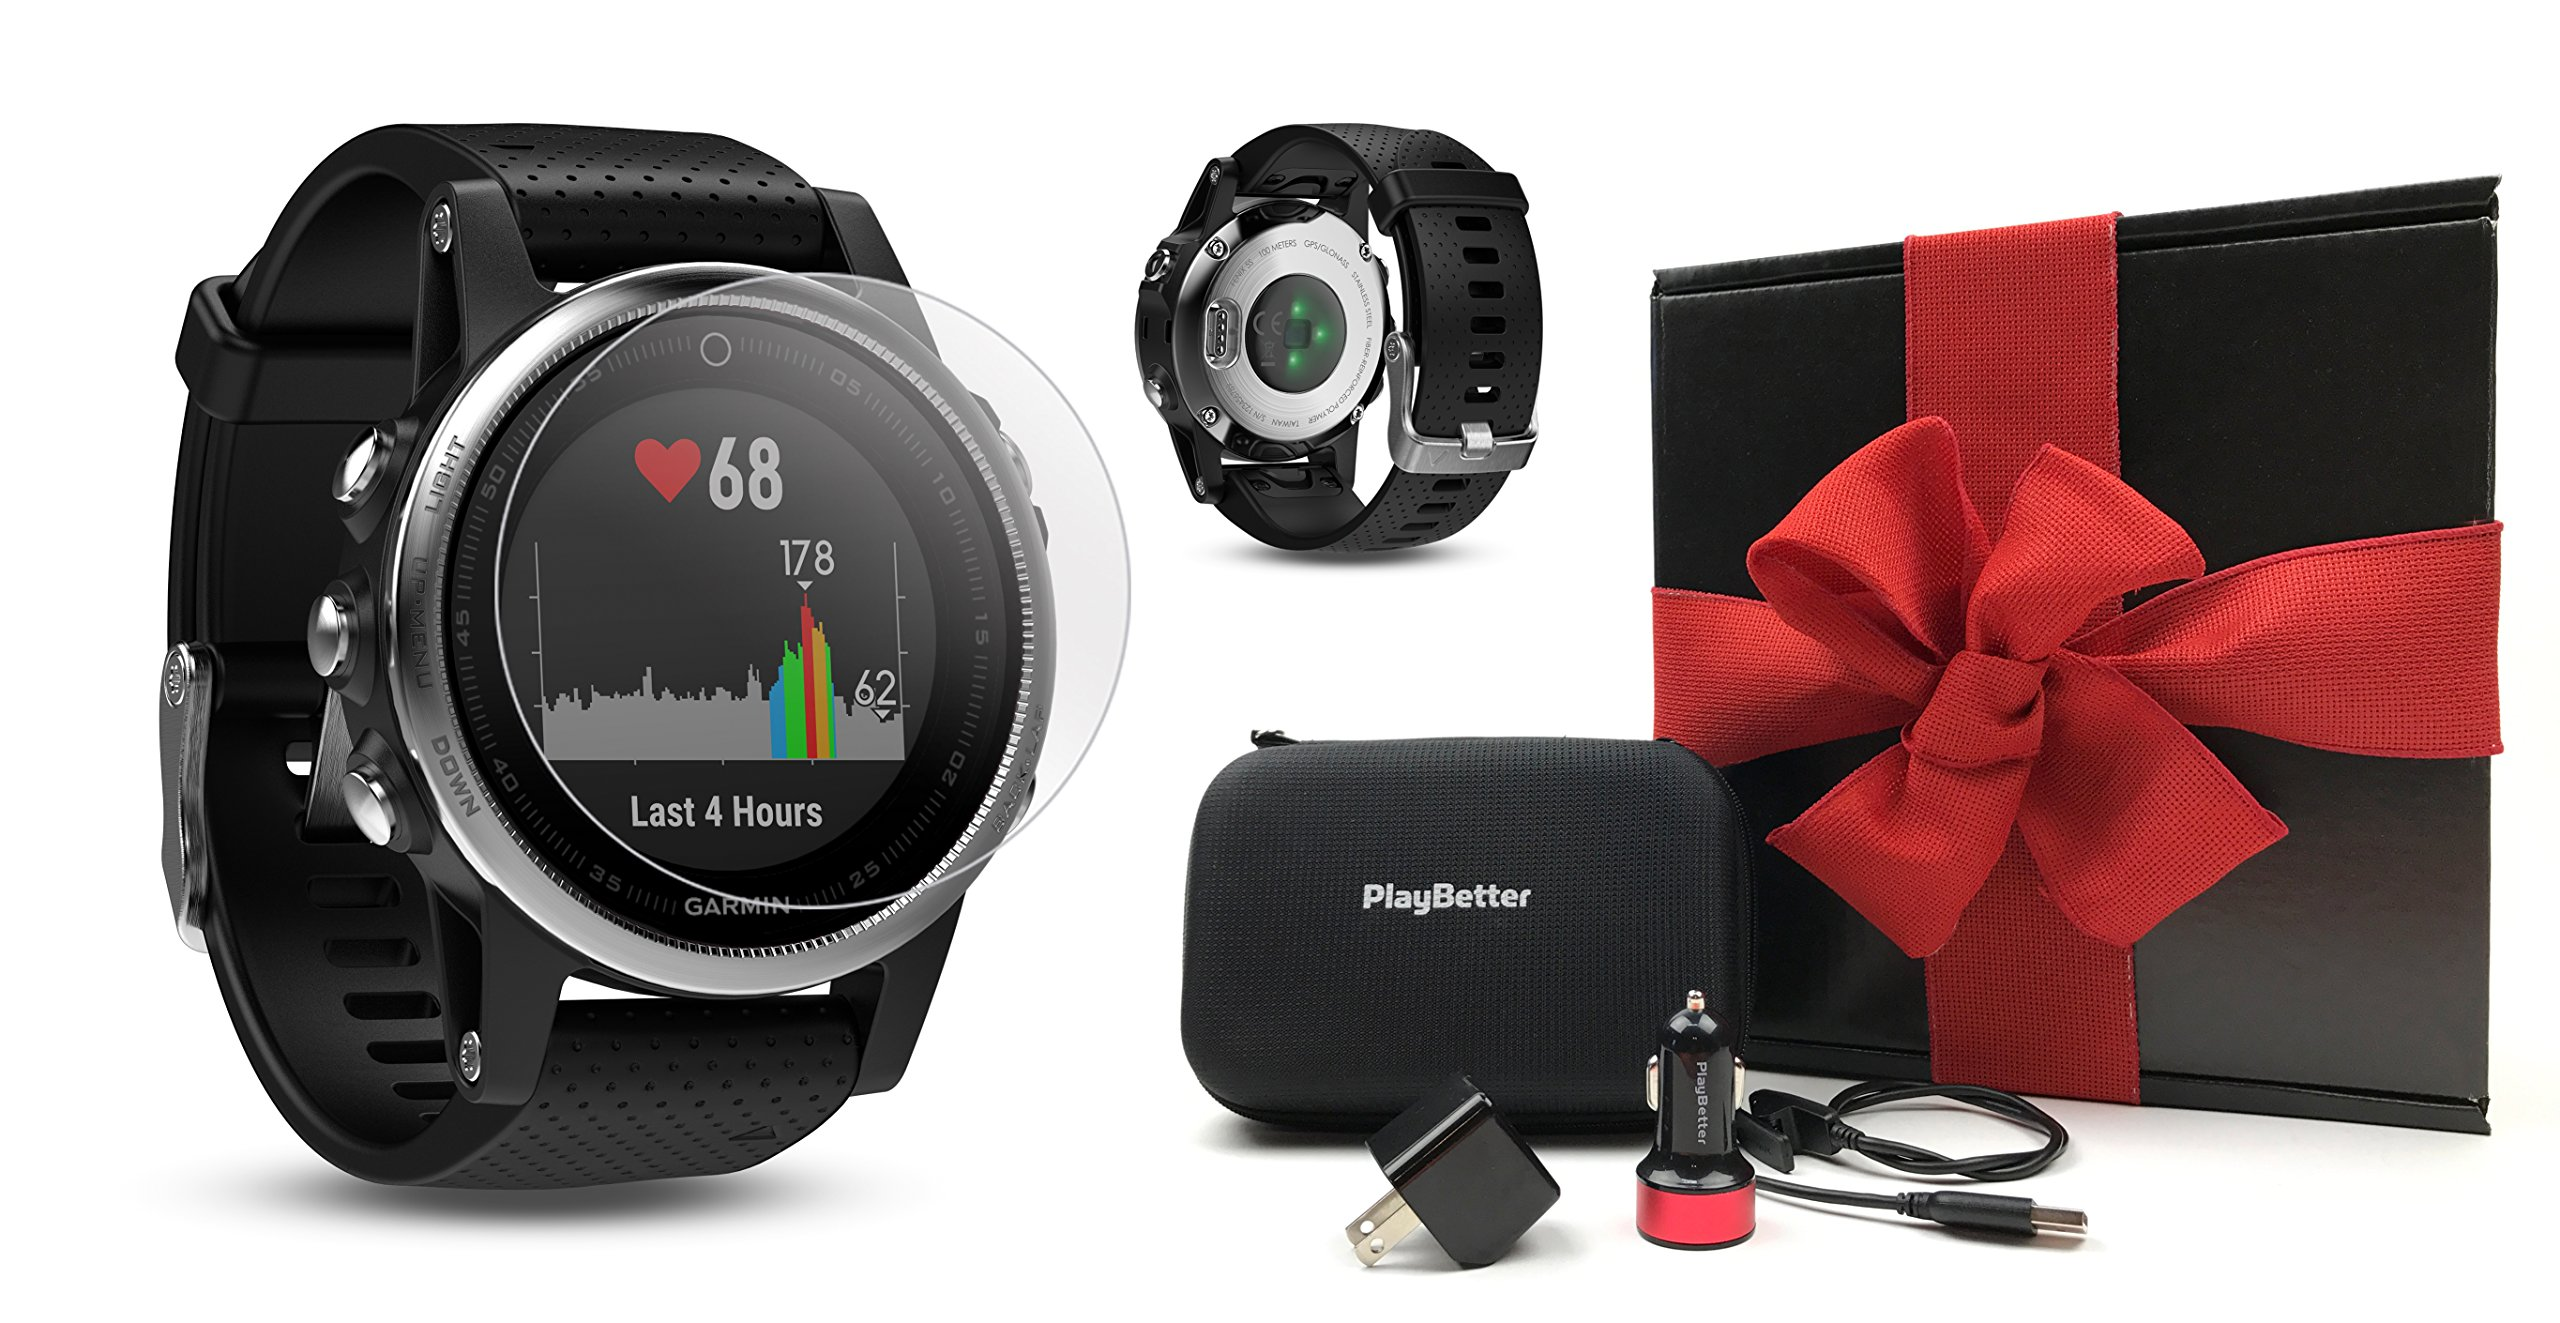 Garmin fenix 5S (Silver with Black Band) GIFT BOX Bundle | Includes HD Screen Protector, PlayBetter USB Car/Wall Adapter & Hard Case | Multi-Sport GPS Fitness Watch, Wrist-HR | Black Gift Box